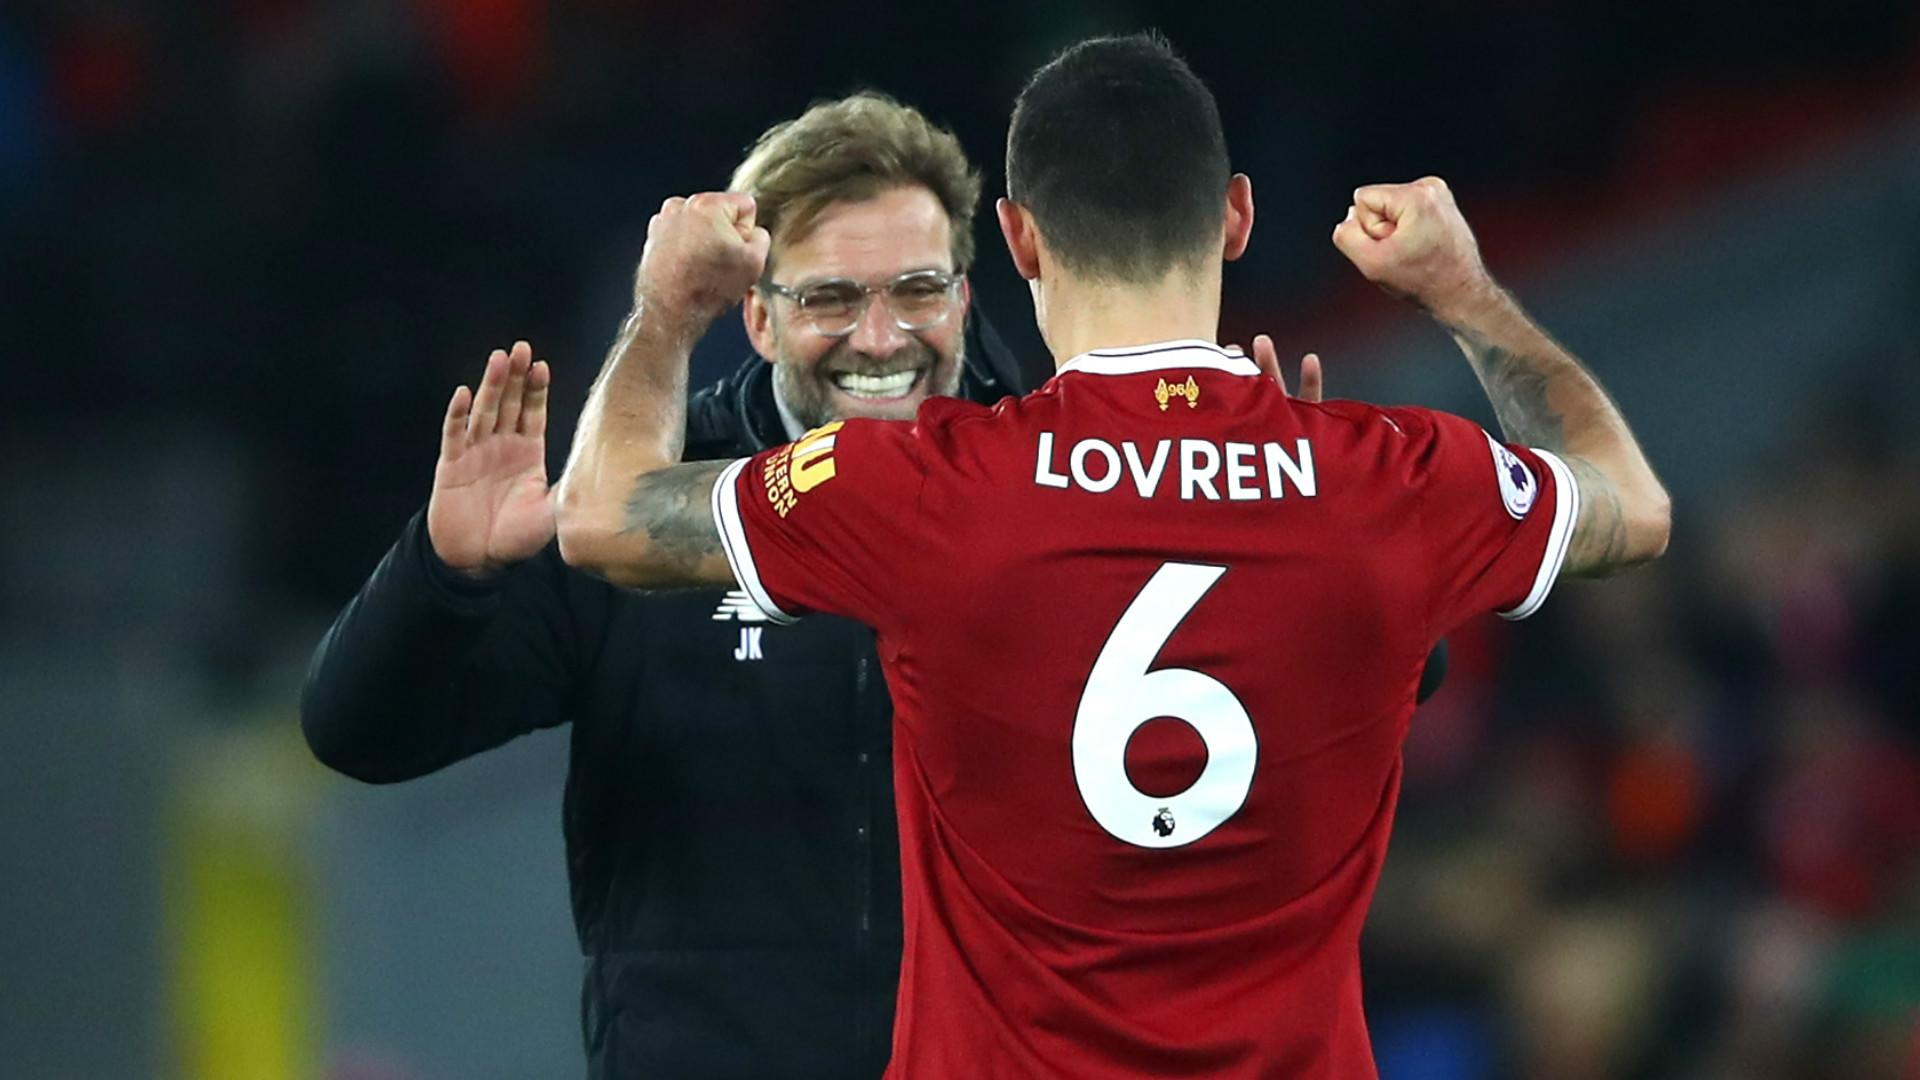 Lovren Hits Out At Critics As Klopp Backs Defender To